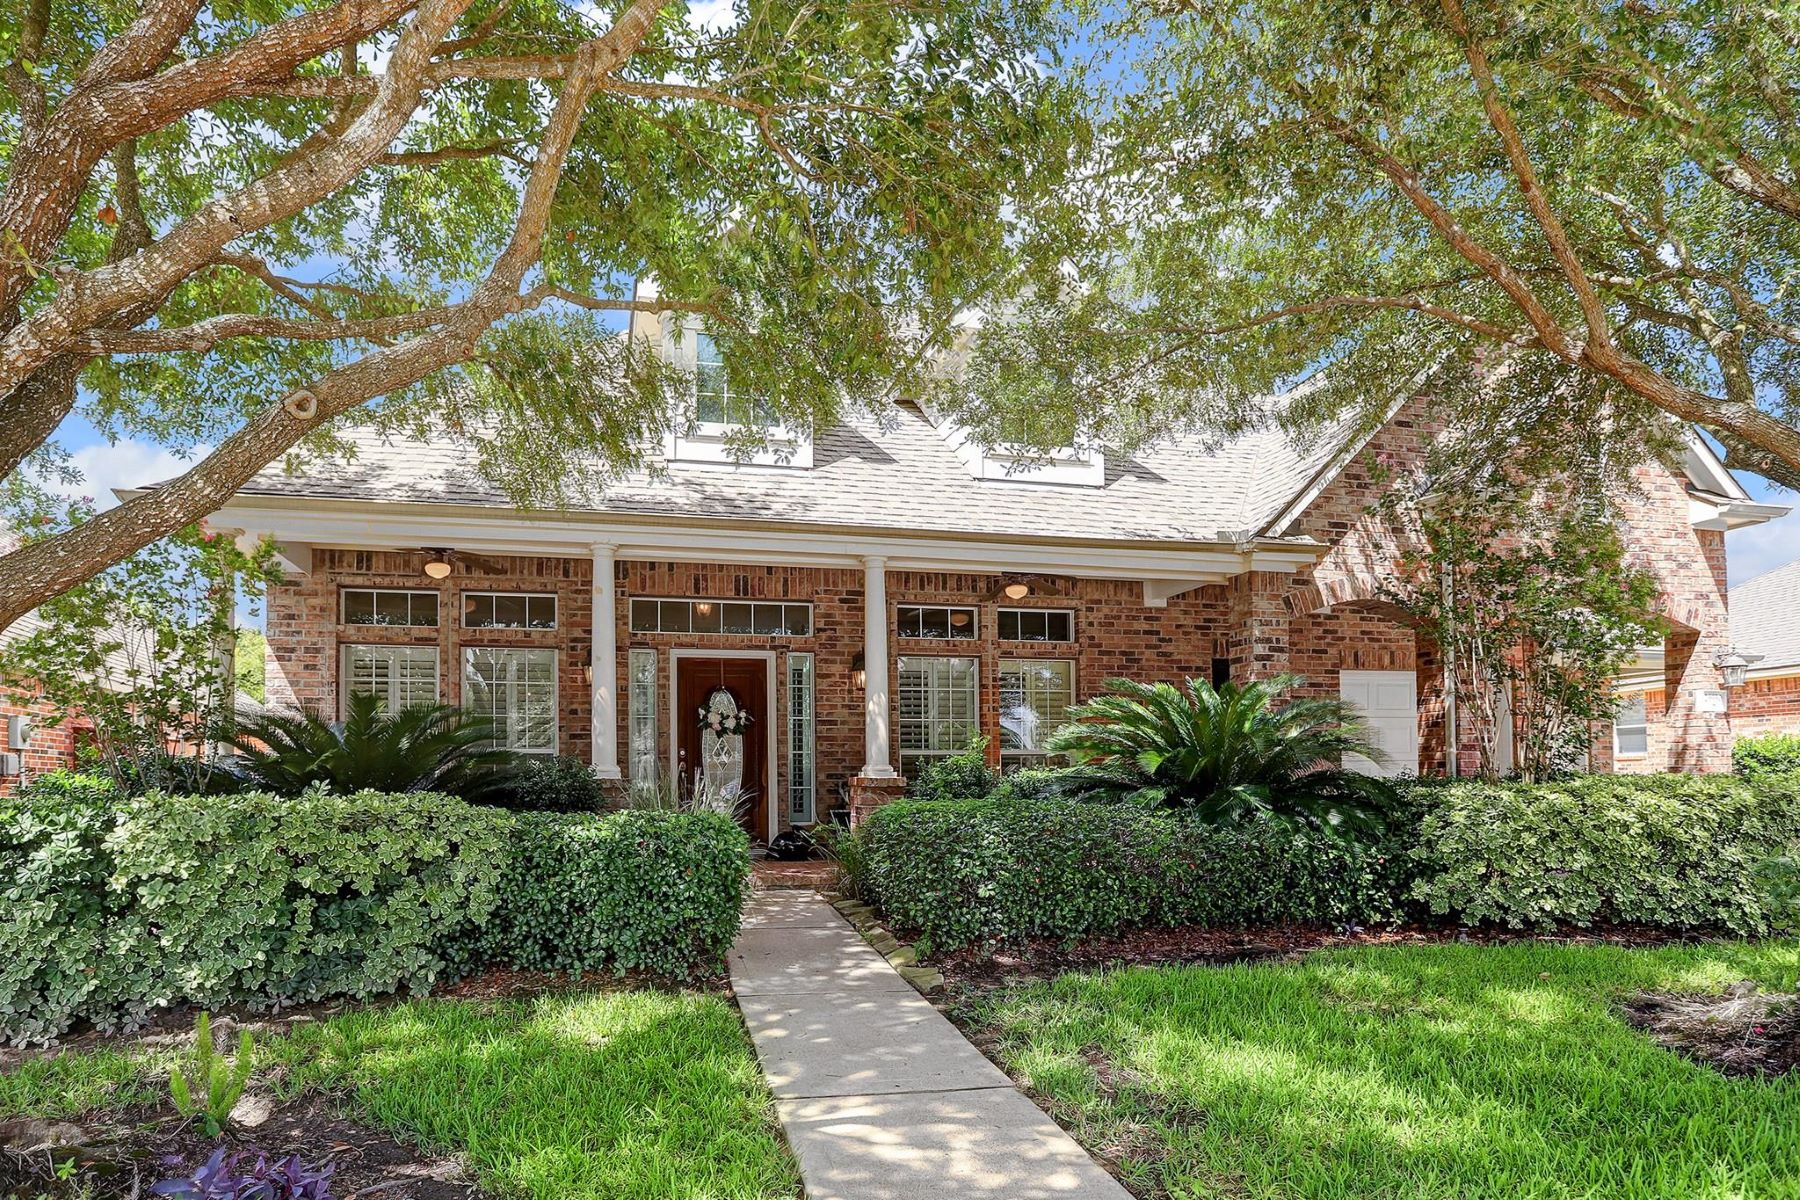 Single Family Homes for Sale at 26930 Temple Park Lane 26930 Temple Park Laane Cypress, Texas 77433 United States